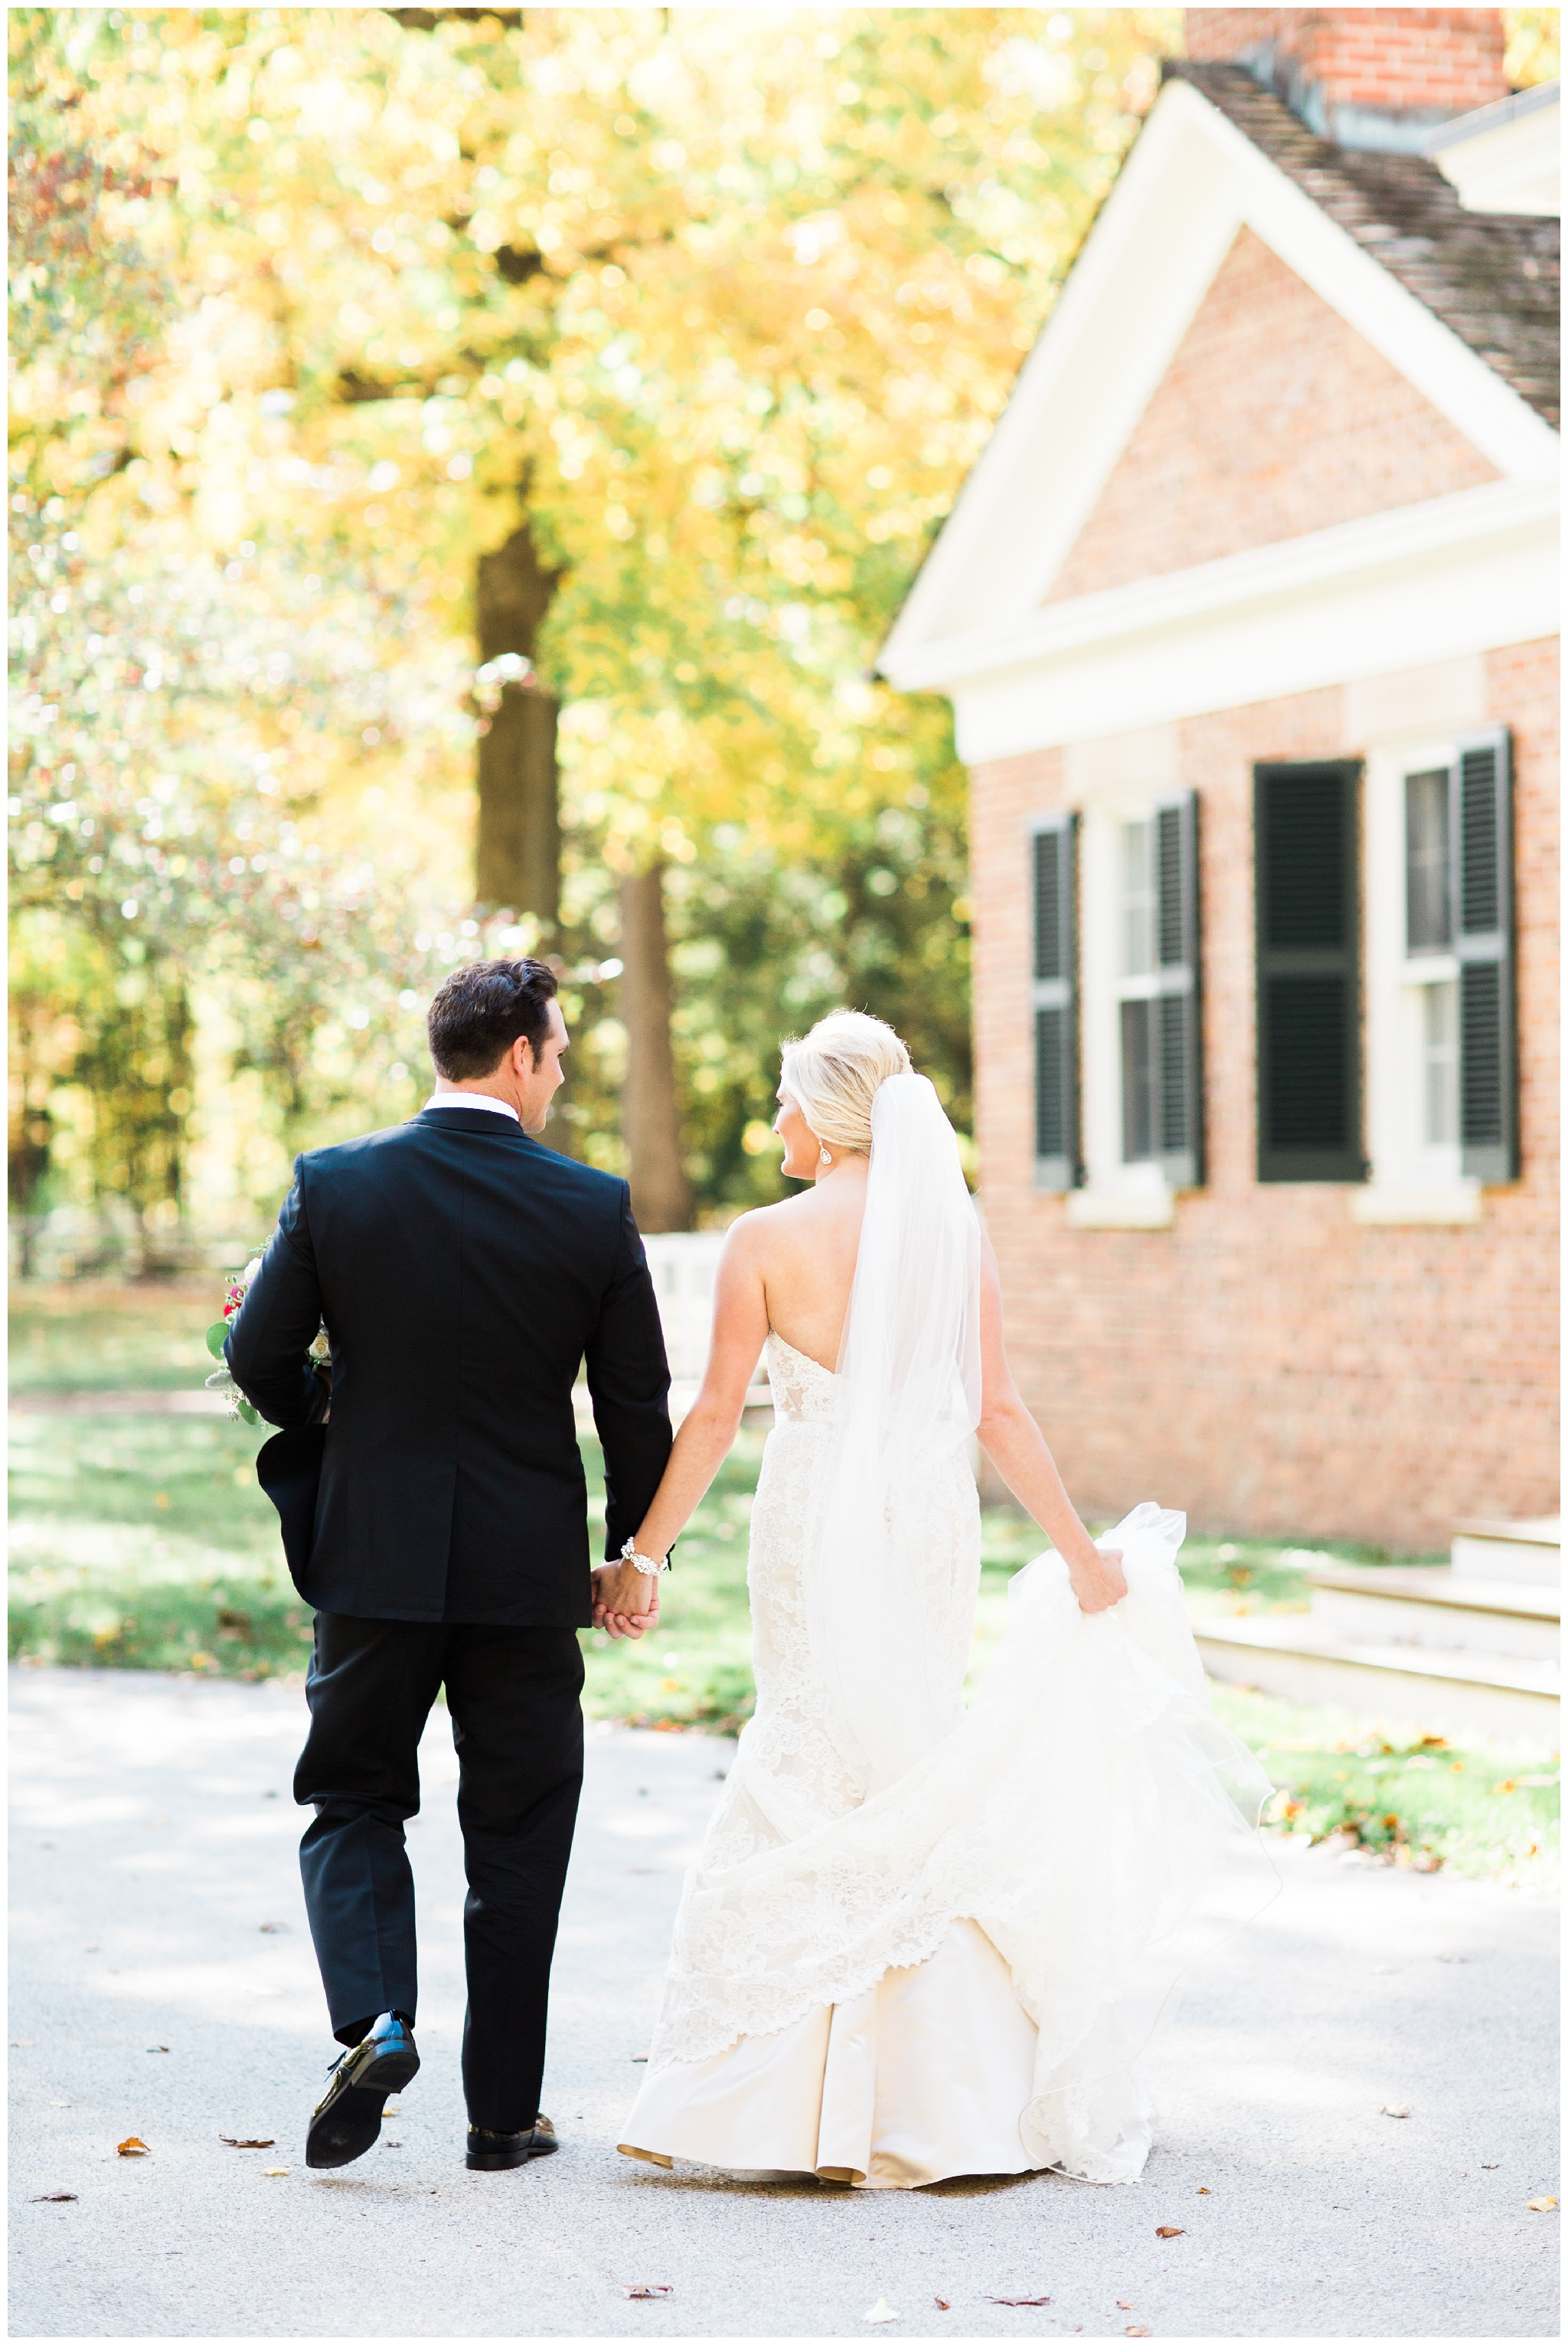 RebeccaHaleyPhotography_BarringtonPhotographer_ChicagoPhotographer_ChicagoWedding_0037.jpg